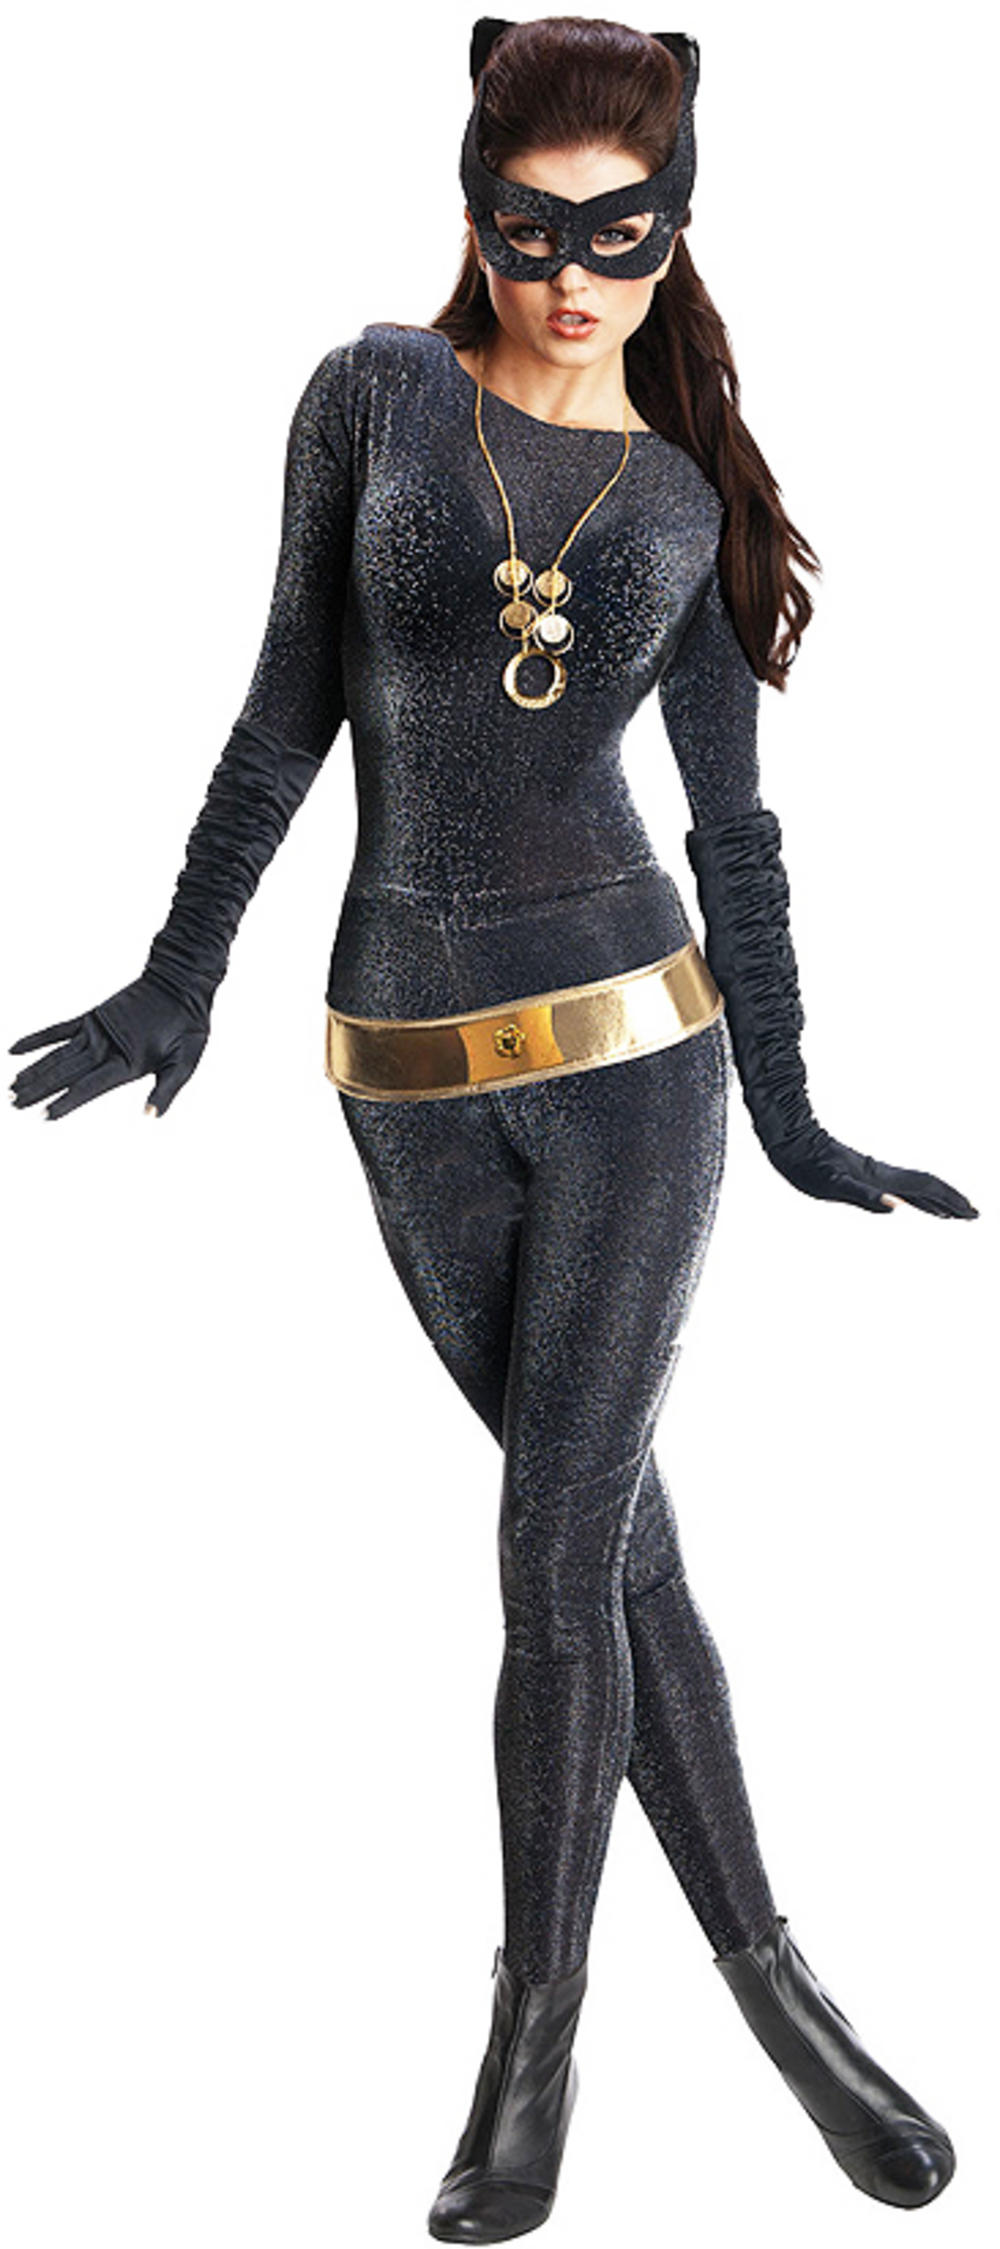 Grand Heritage Catwoman Costume